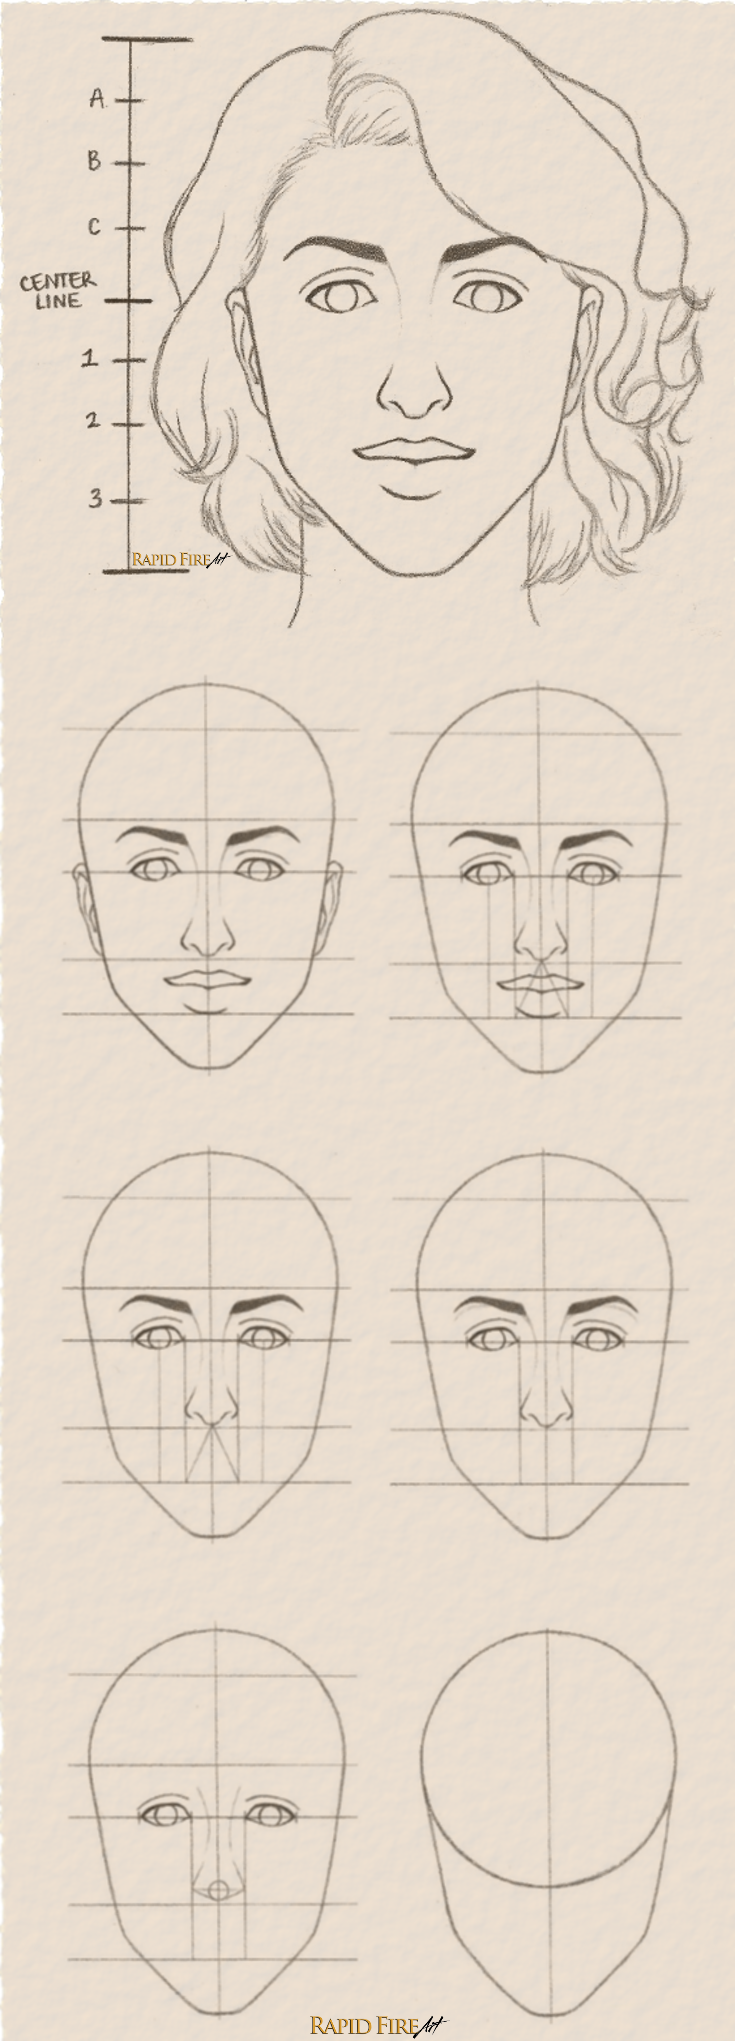 How to draw a female face in 8 steps